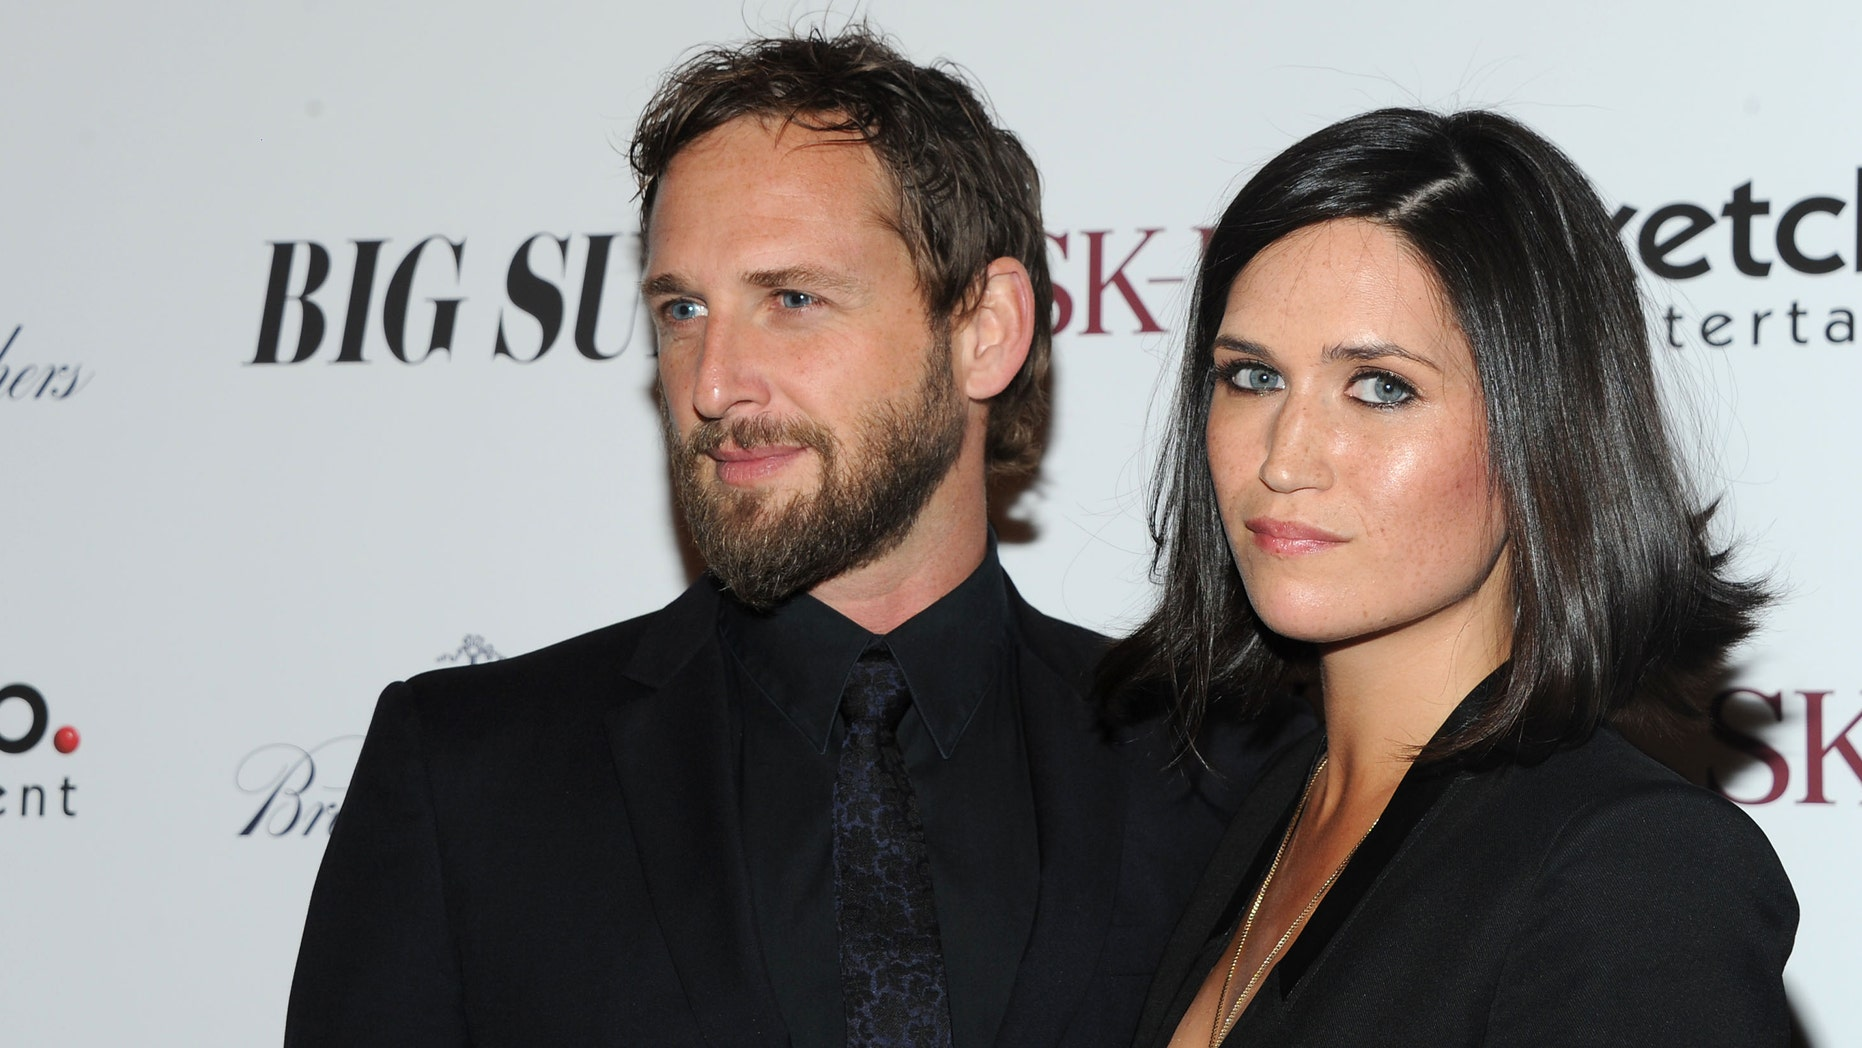 """NEW YORK, NY - OCTOBER 28:  Actor Josh Lucas and writer Jessica Ciencin Henriquez attend the """"Big Sur"""" premiere at Sunshine Landmark on October 28, 2013 in New York City.  (Photo by Ben Gabbe/Getty Images)"""